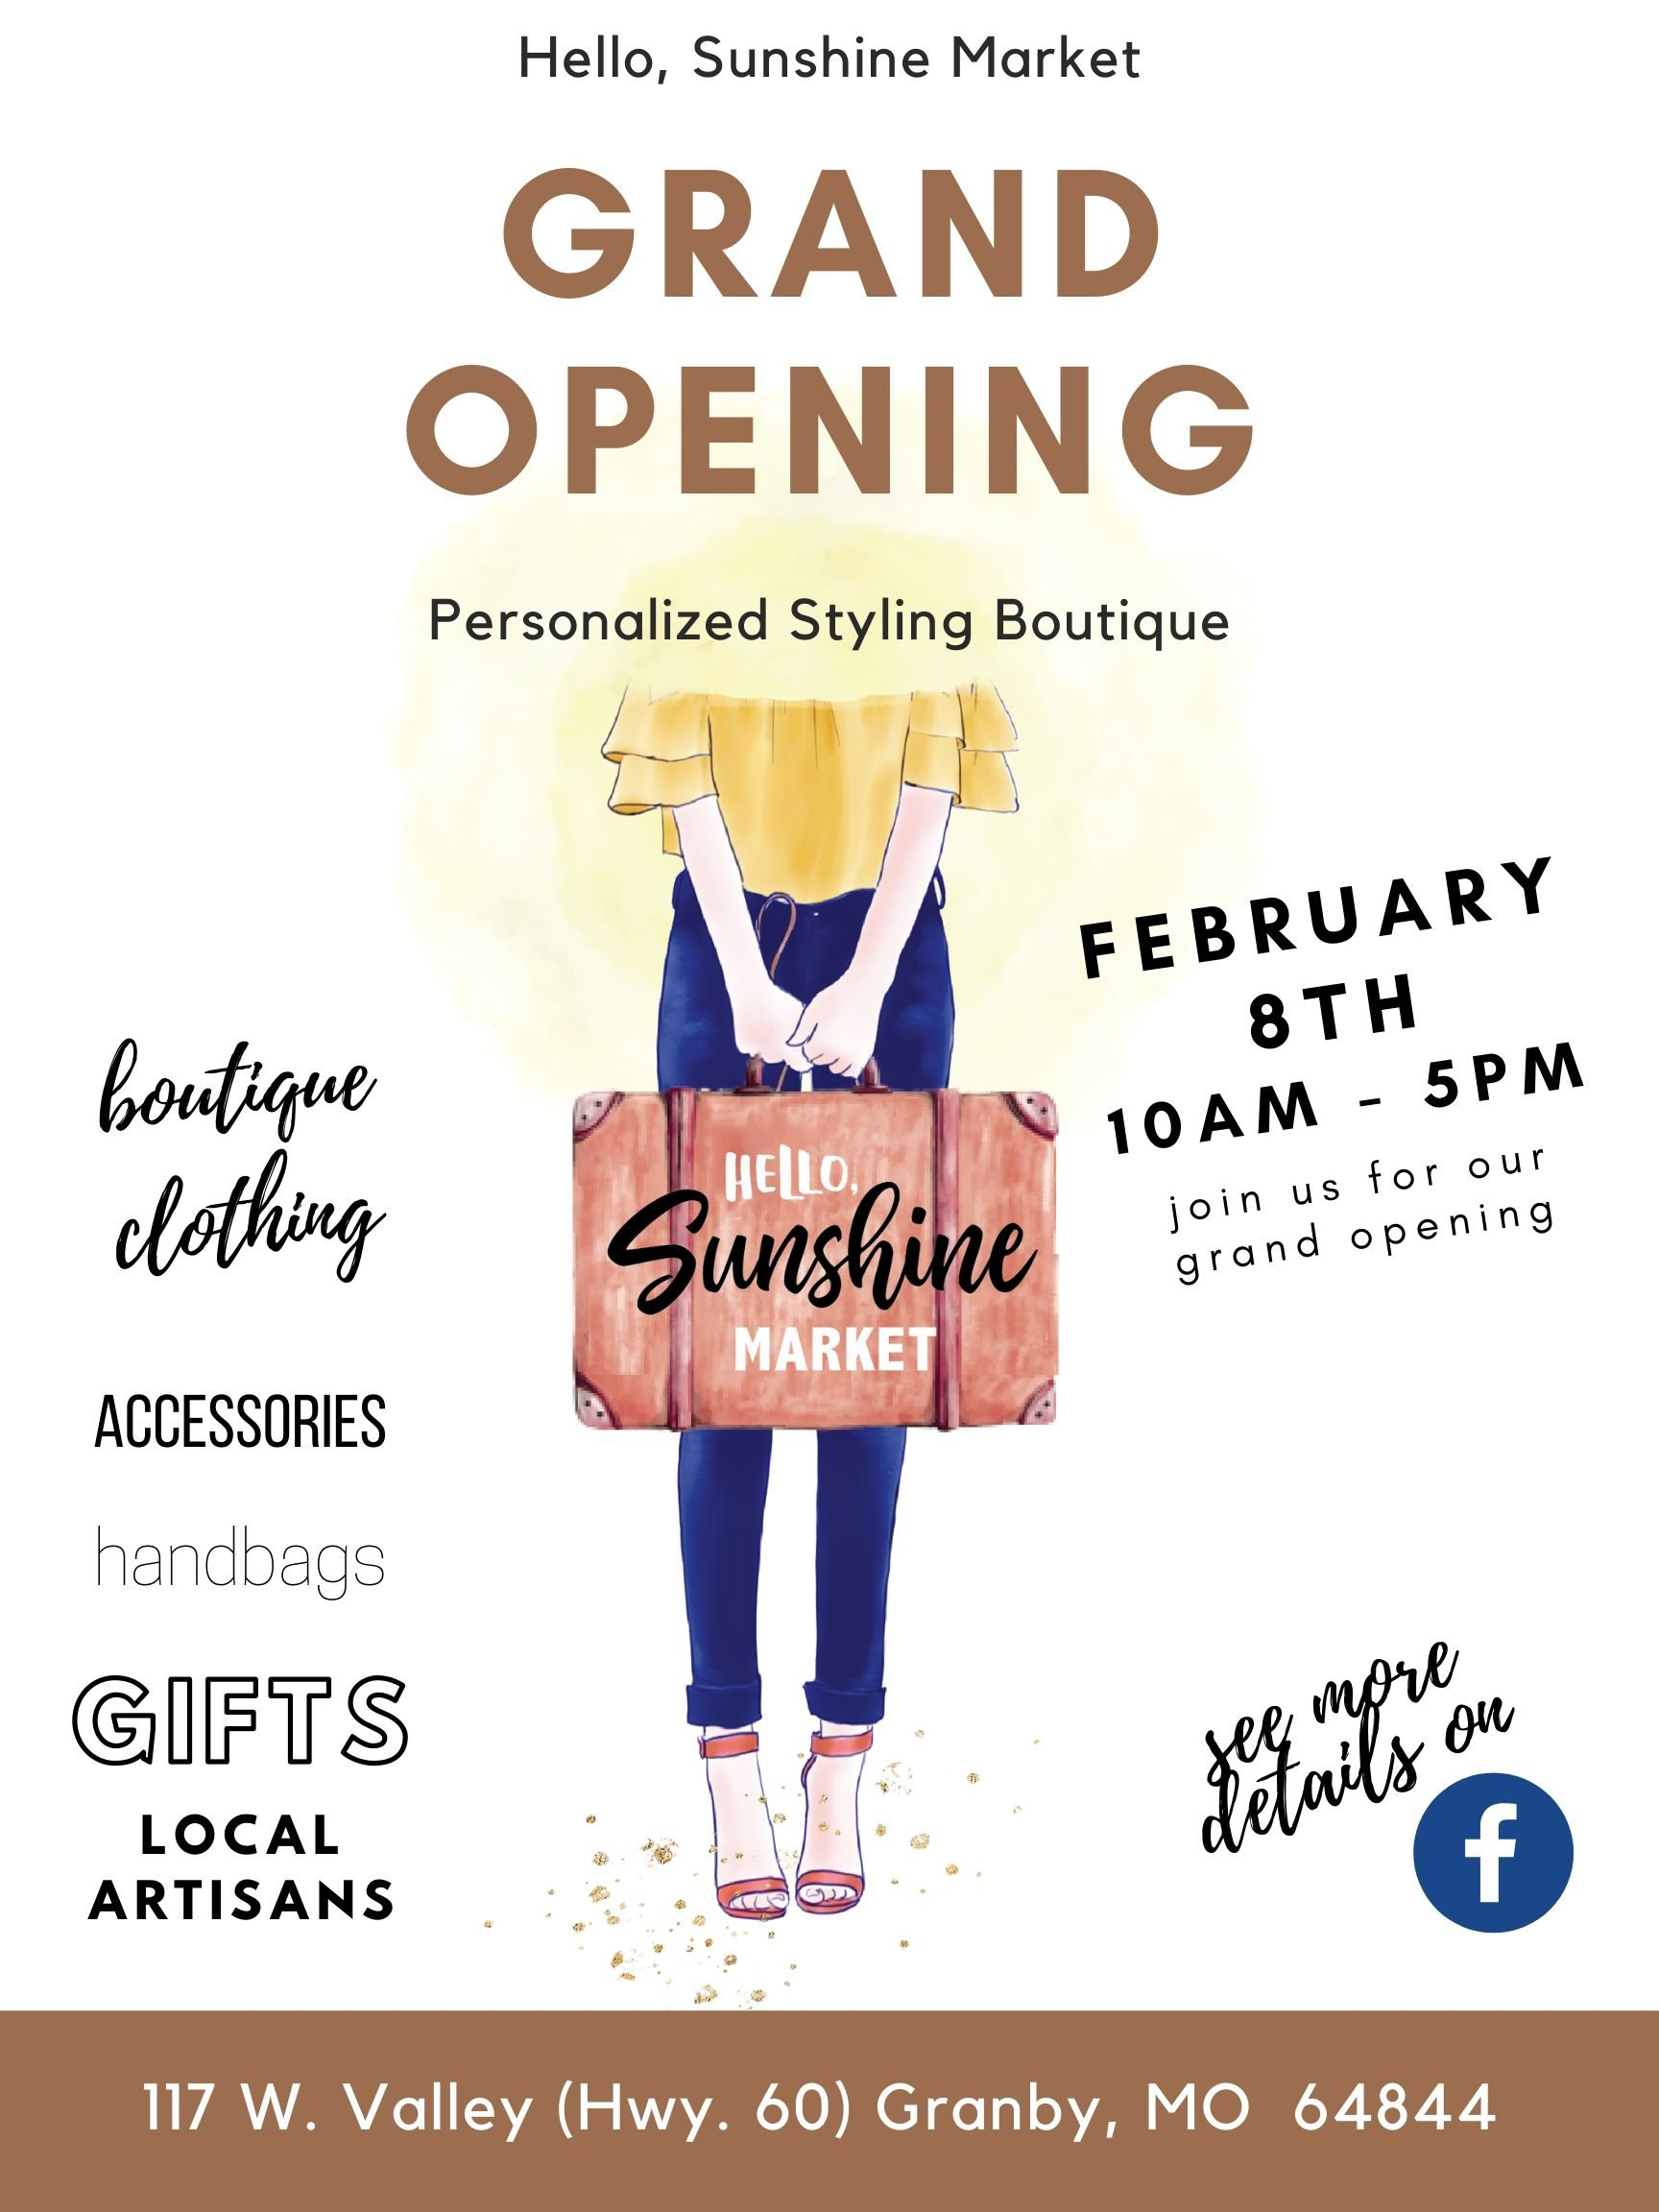 Boutique opening in Granby, MO